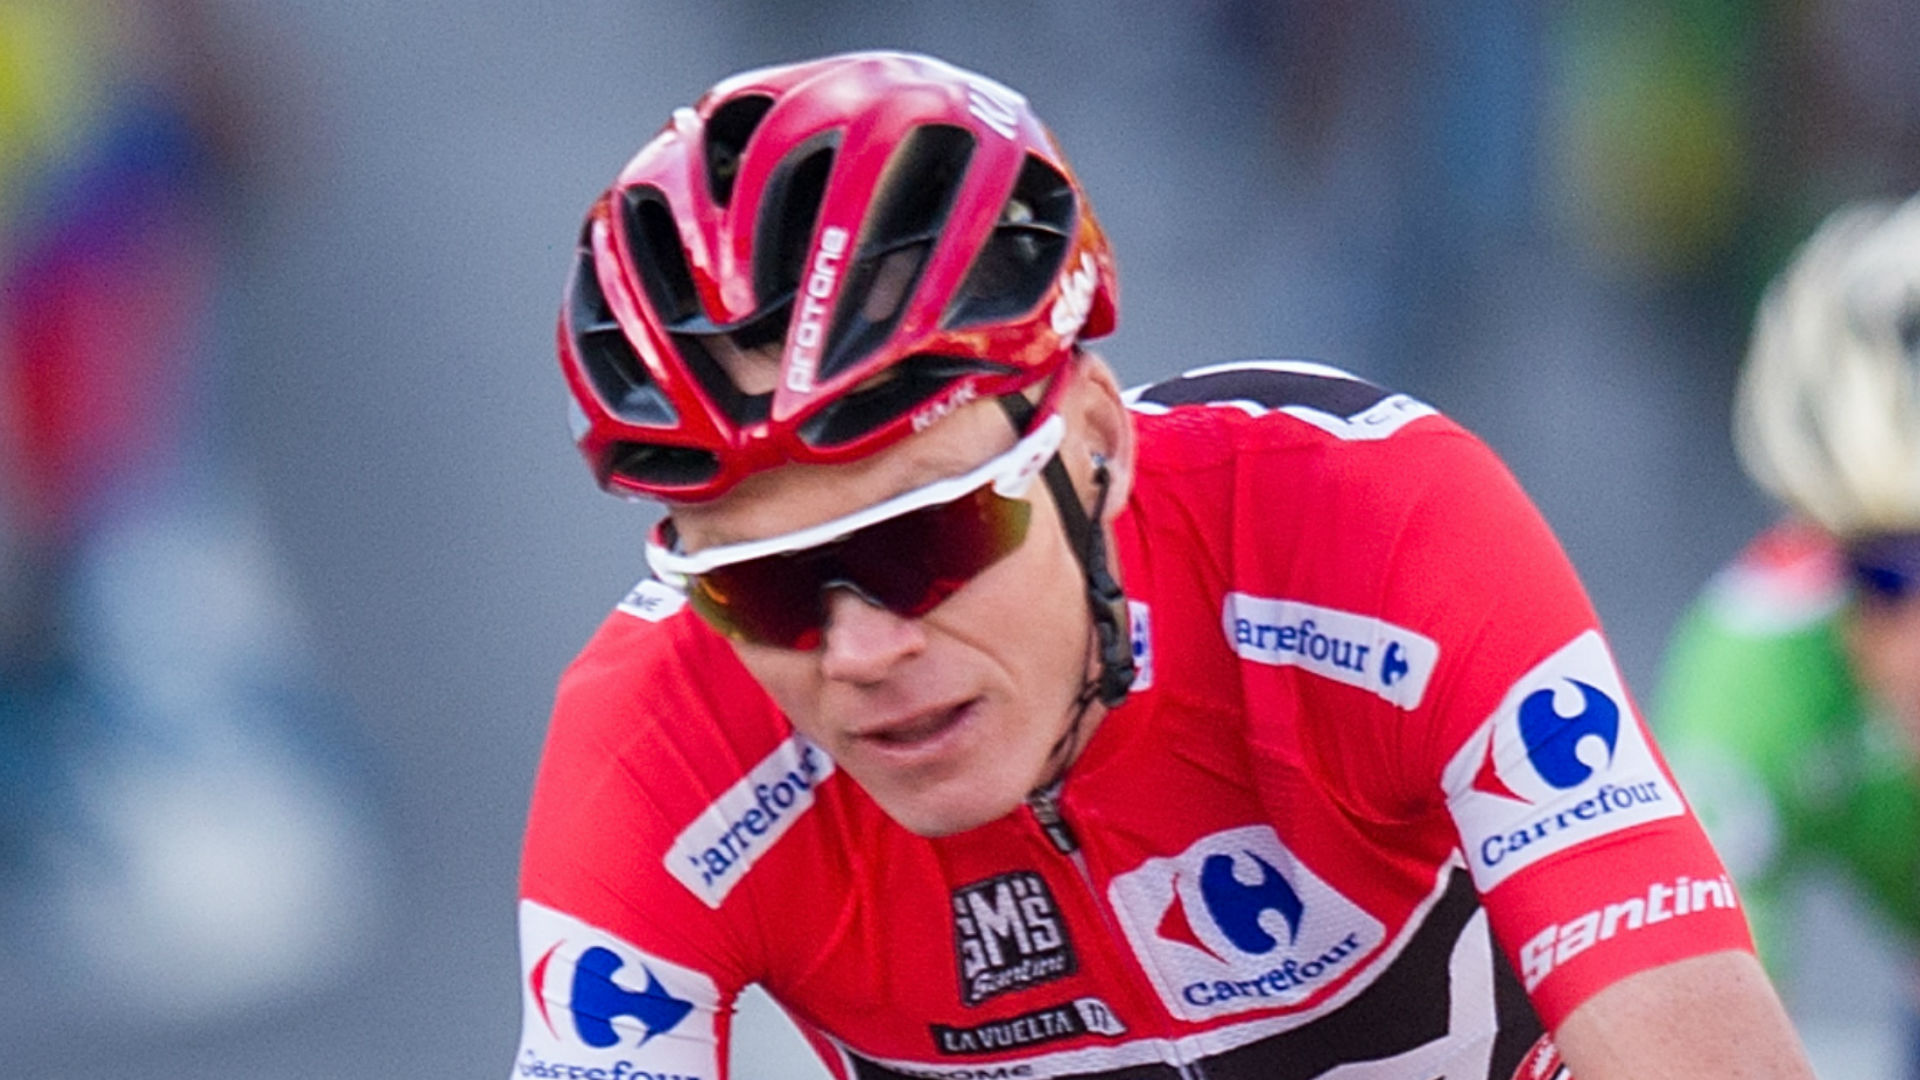 The Tour de France was pushed back by the COVID-19 pandemic and Chris Froome believes that will be to his benefit.